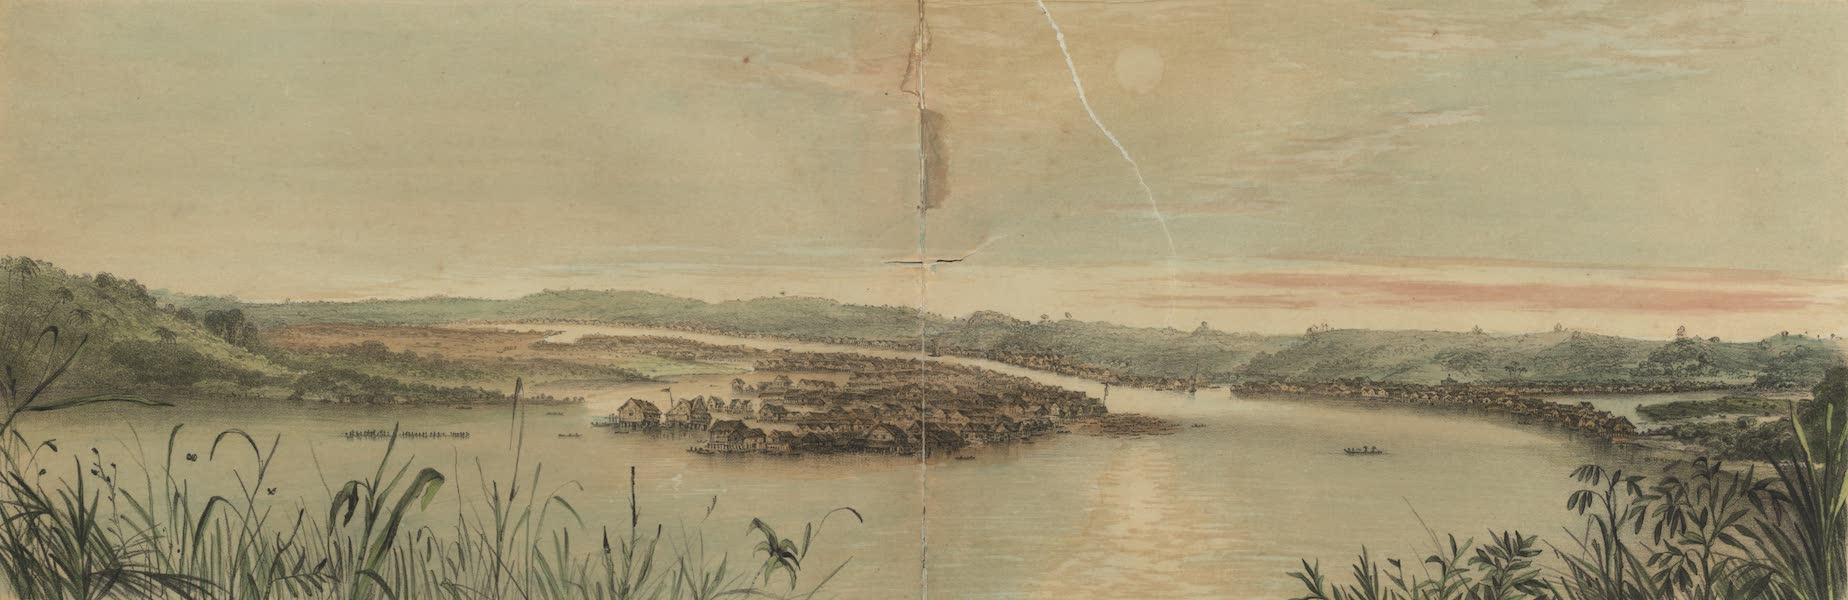 Views in the Eastern Archipelago - Bird's eye view of the City of Brune, from the Talan Subuk (1847)